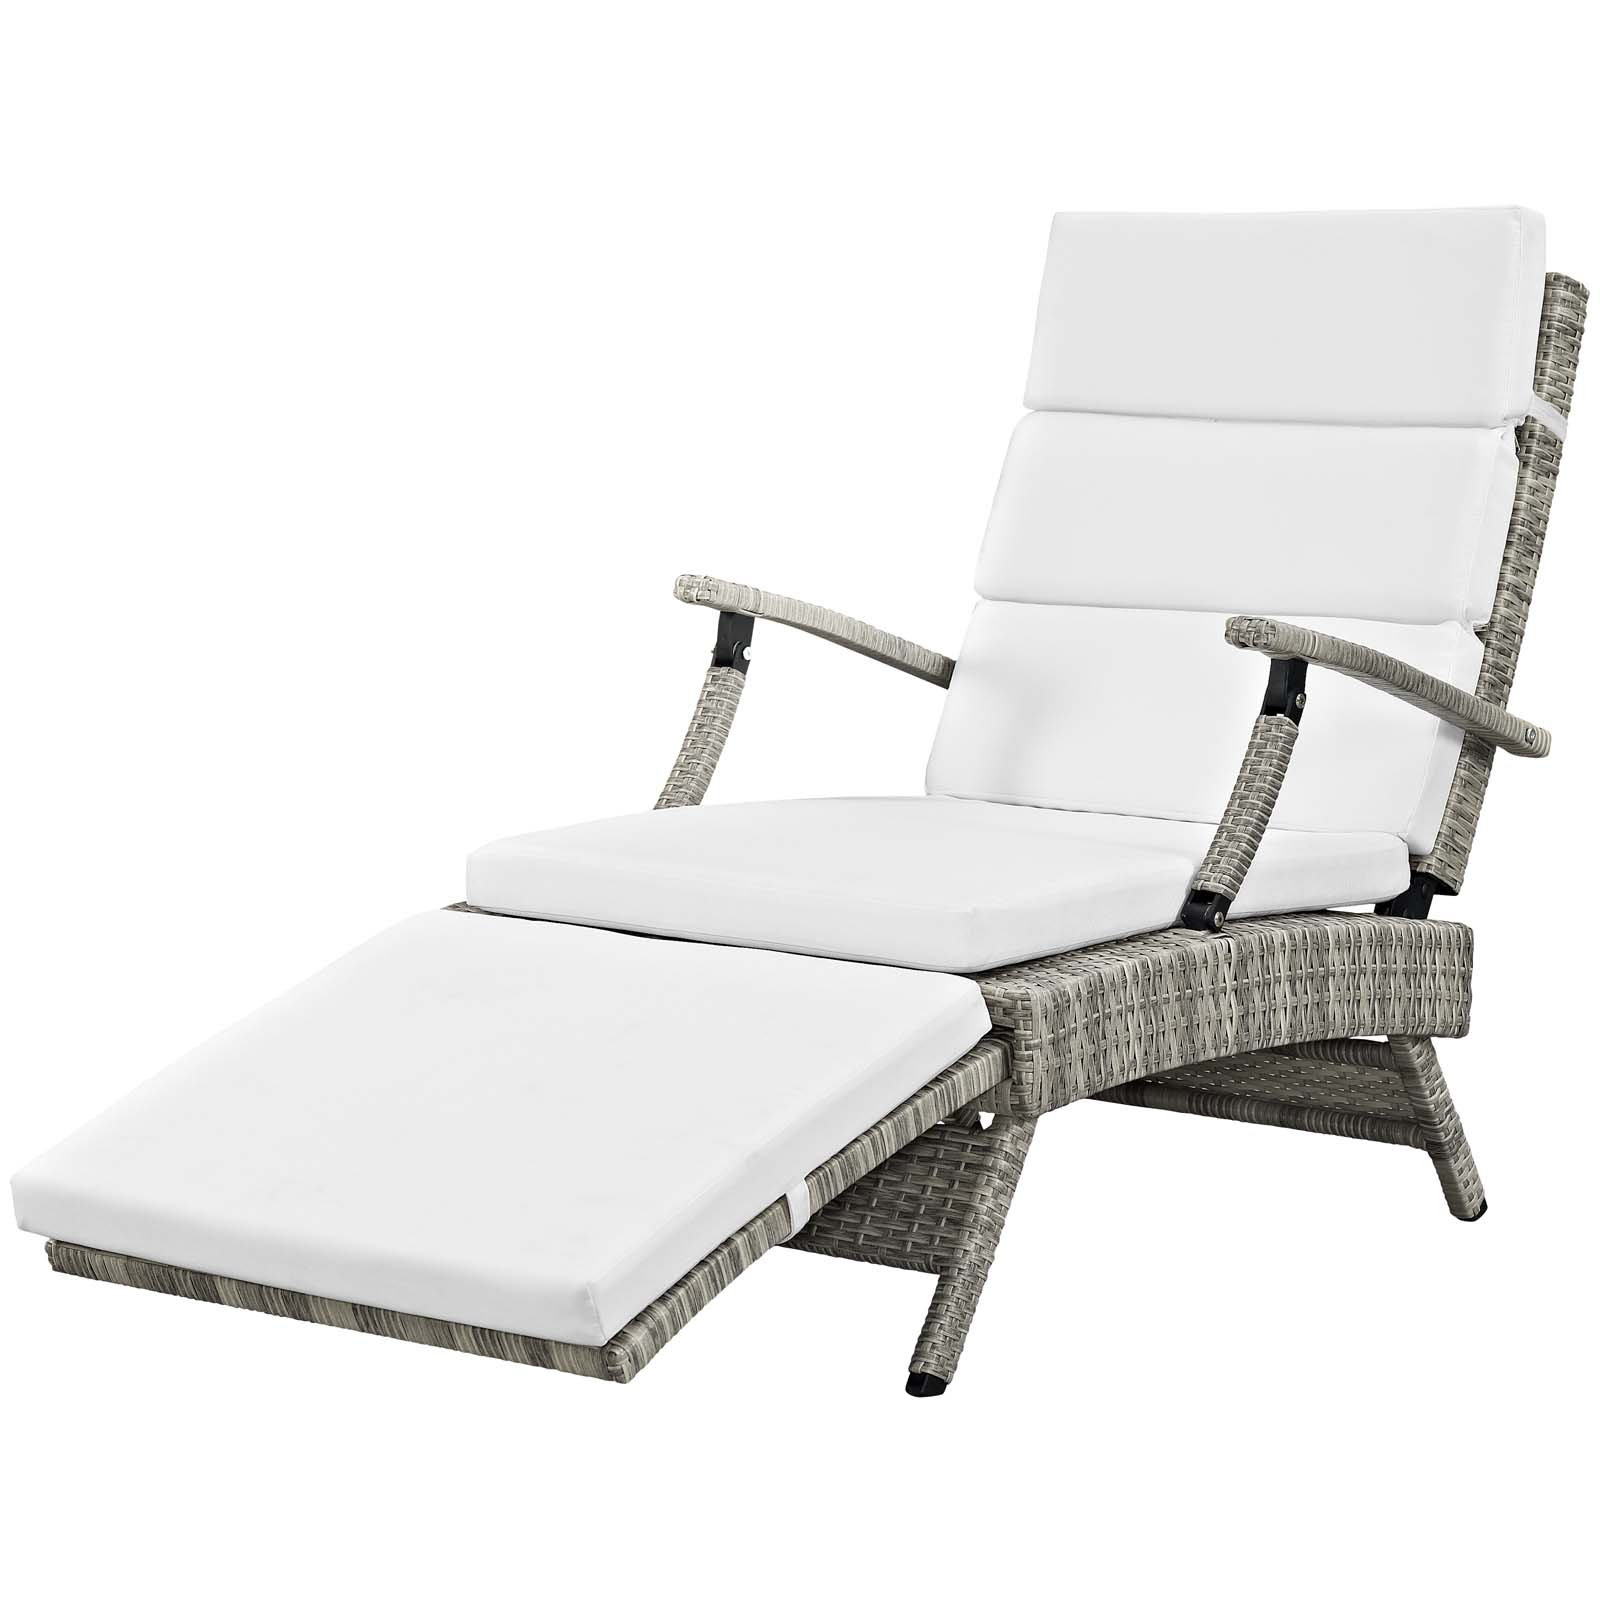 2020 Envisage Chaise Outdoor Patio Wicker Rattan Lounge Chairs Within Details About Envisage Chaise Outdoor Patio Wicker Rattan Lounge Chair – Light Gray Beige (View 2 of 25)